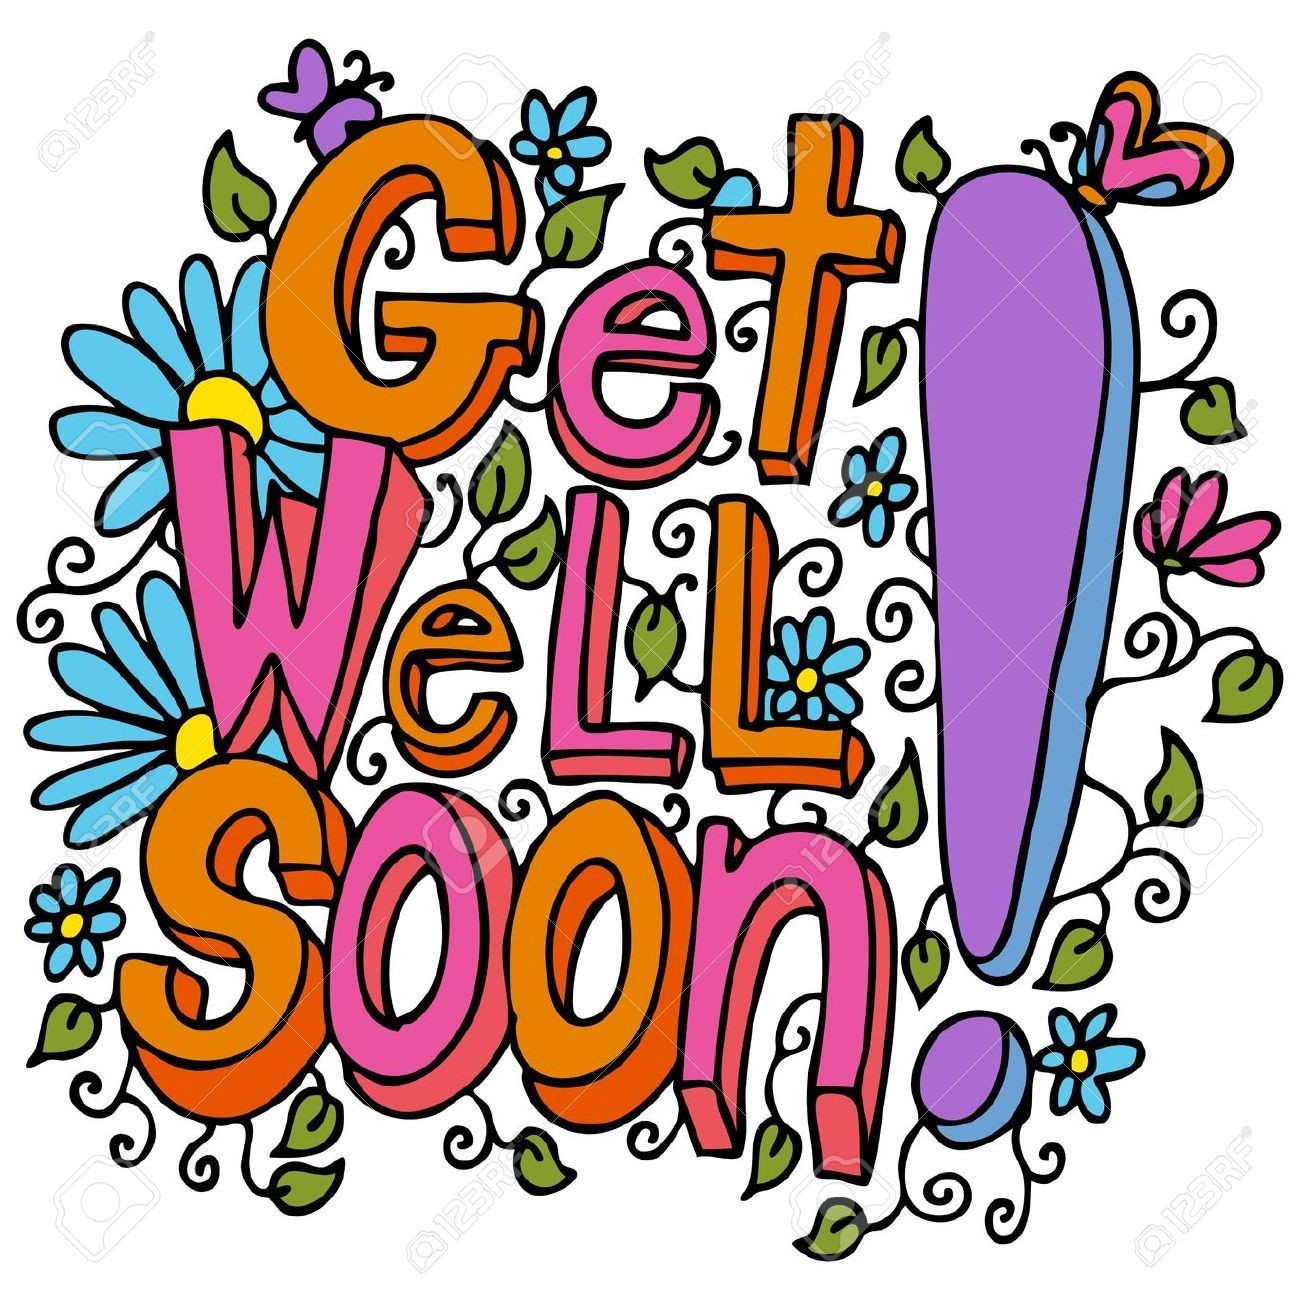 An image of a get well soon floral design drawing royalty free an image of a get well soon floral design drawing royalty free kristyandbryce Gallery